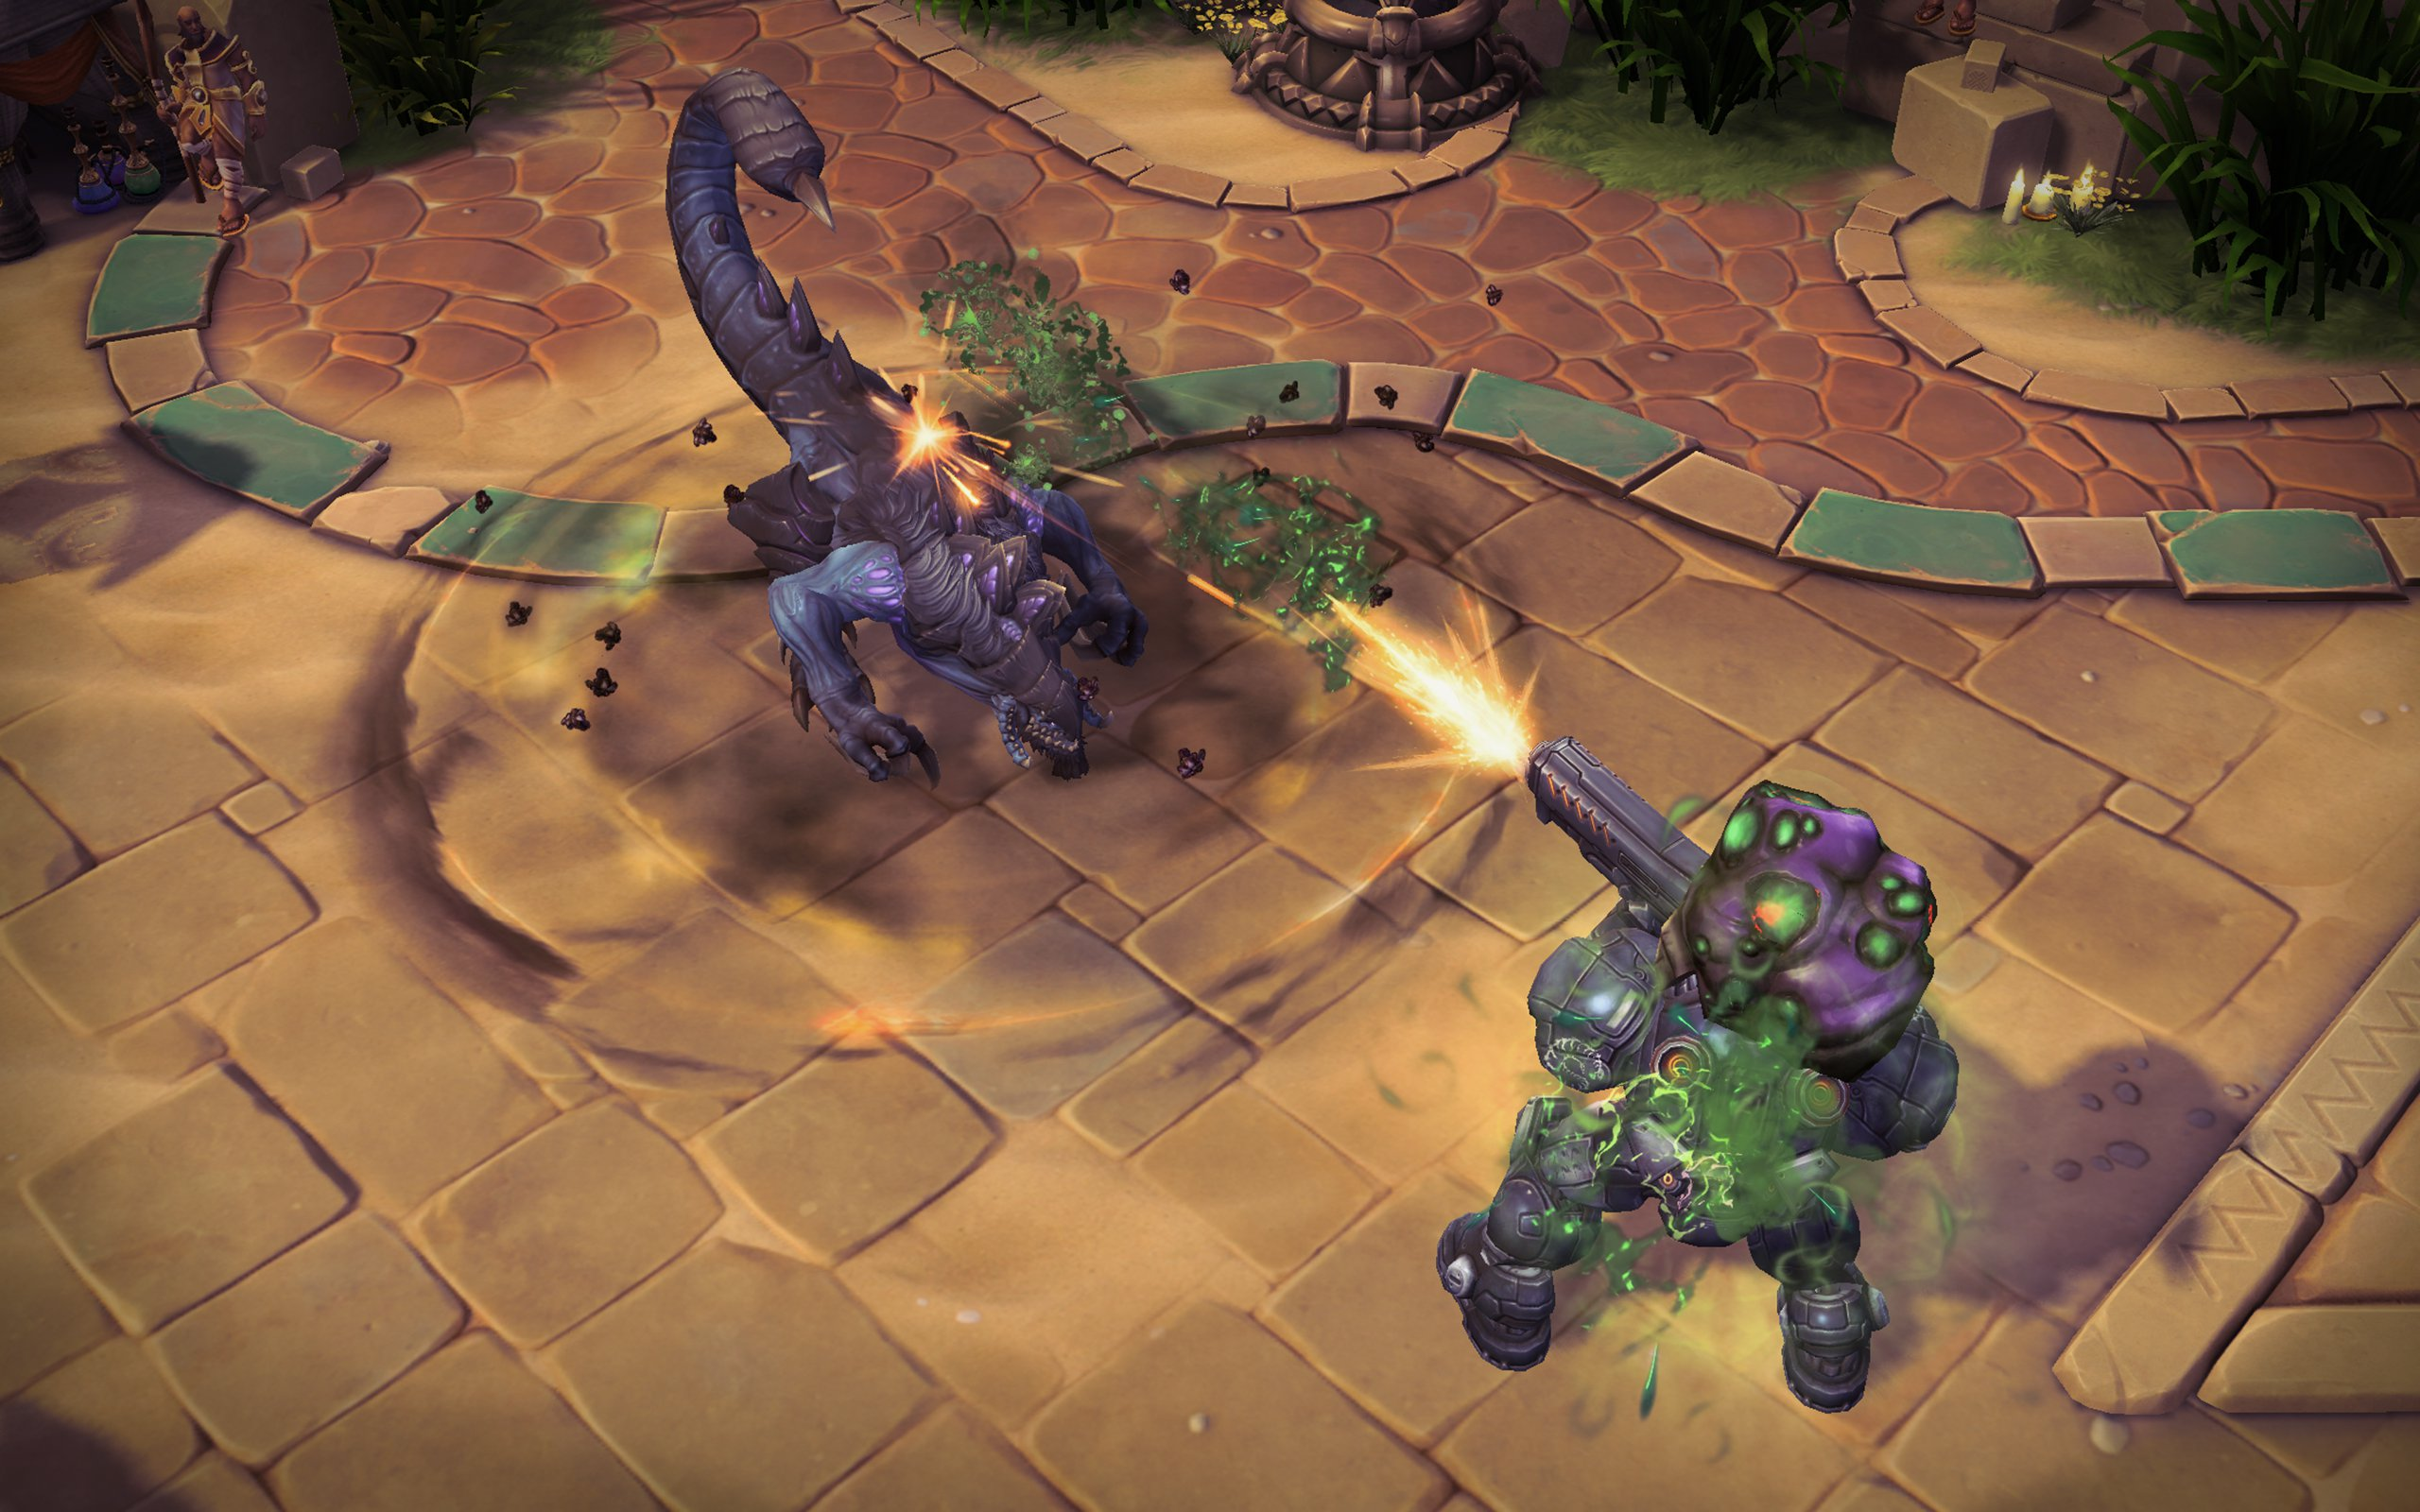 Heroes of the Storm introduces Dehaka